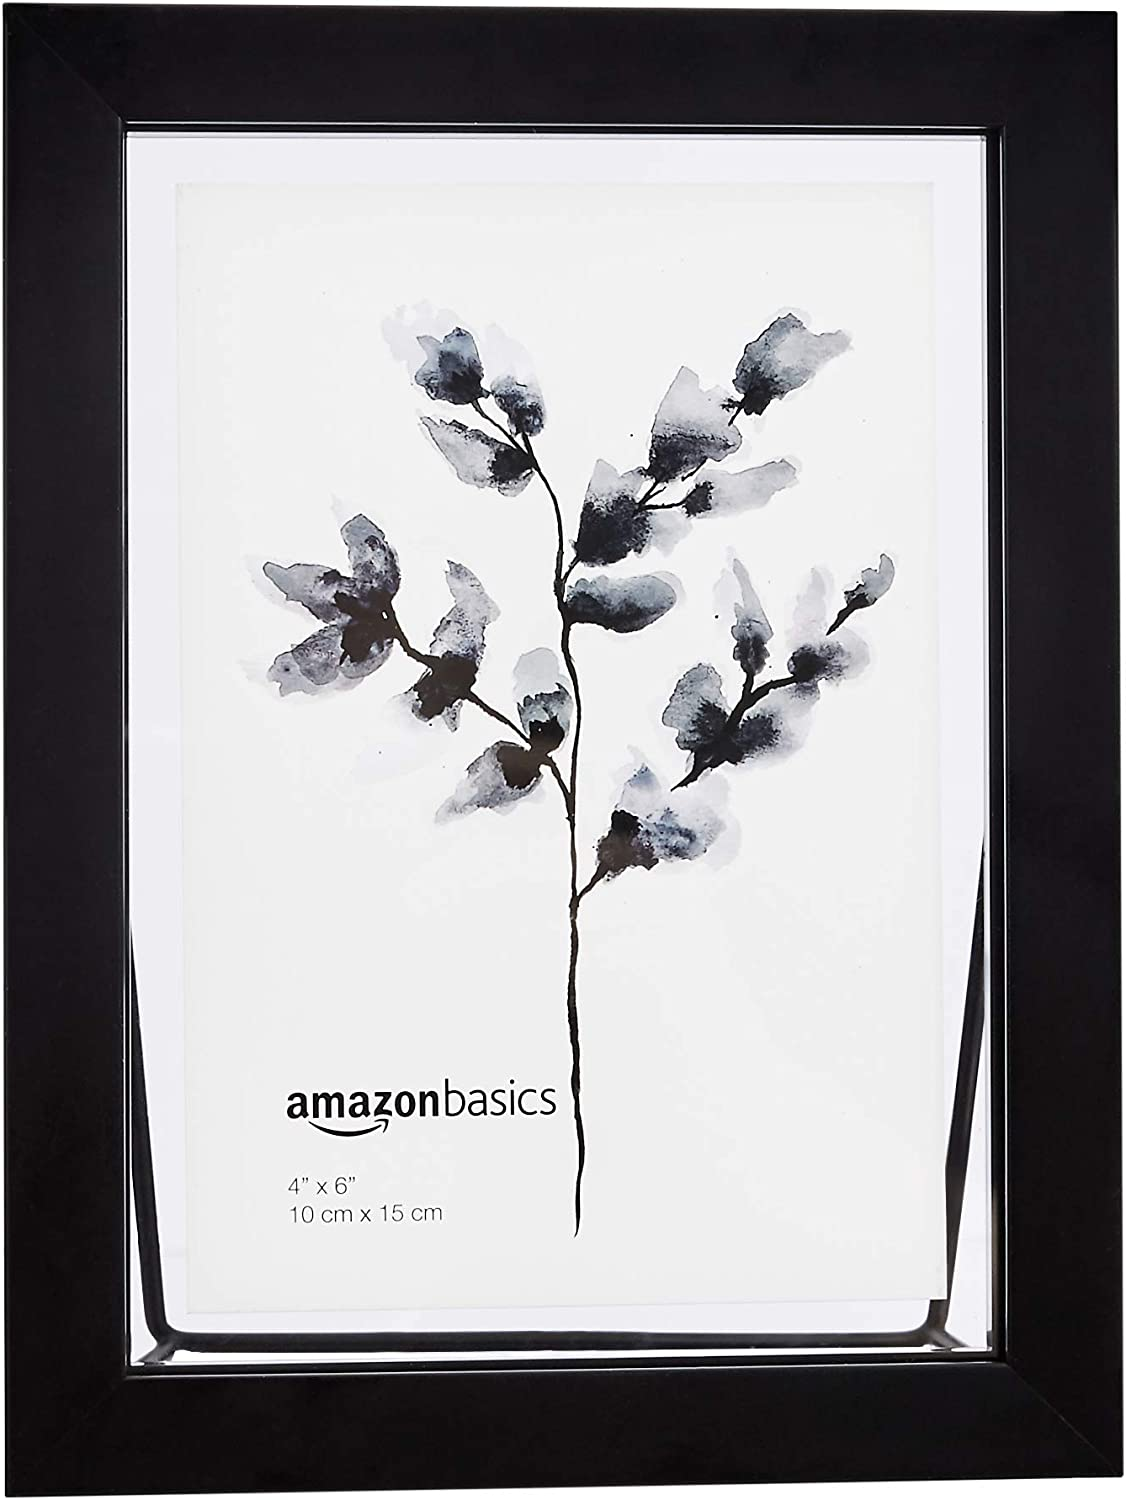 AmazonBasics Wedge Floating Photo Frame for 4 x 6 Inch Photos - Thick Frame, Black